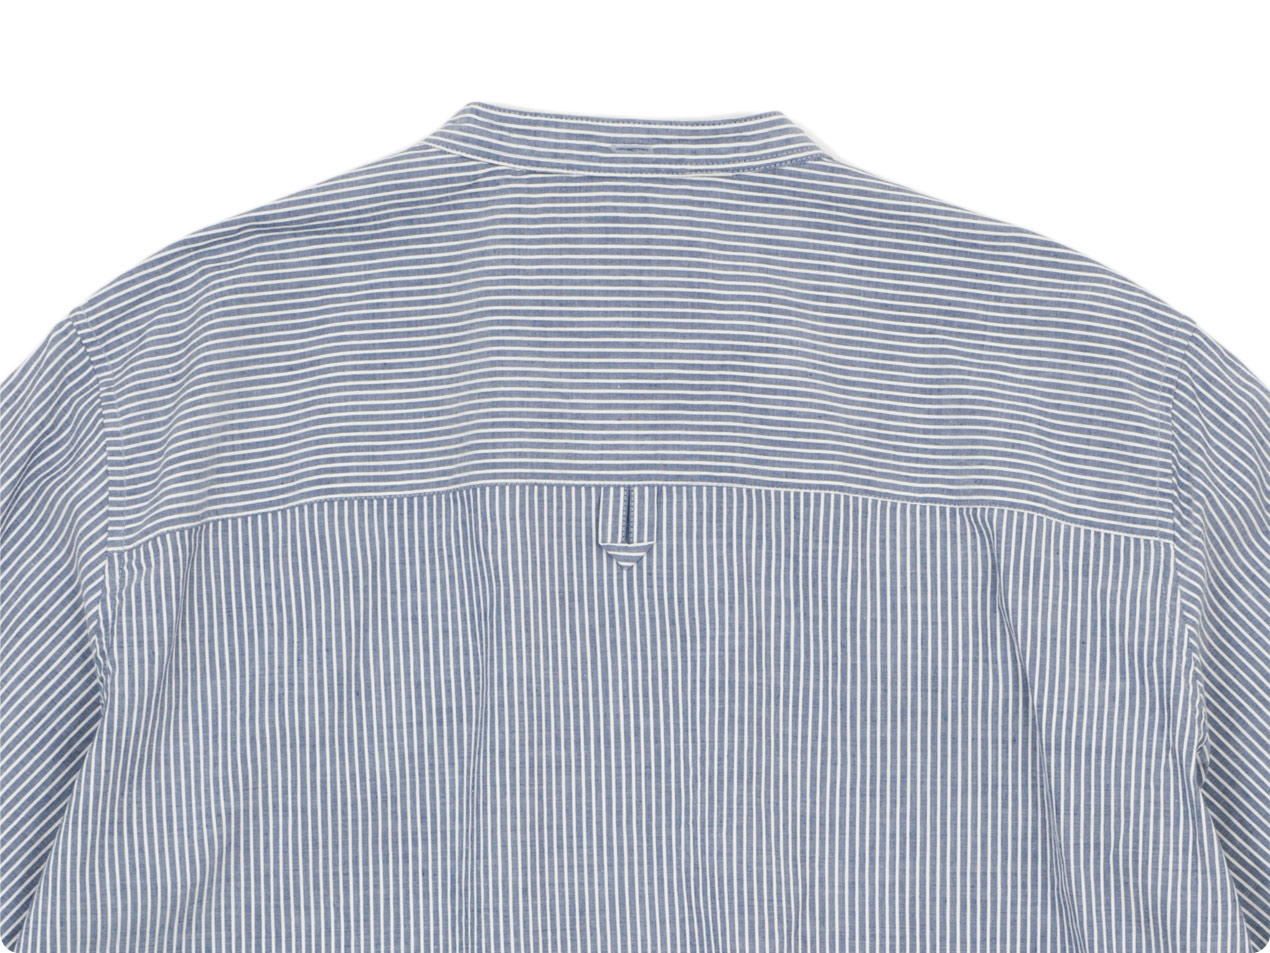 MHL. COTTON LINEN STRIPE S/S SHIRTS〔レディース〕